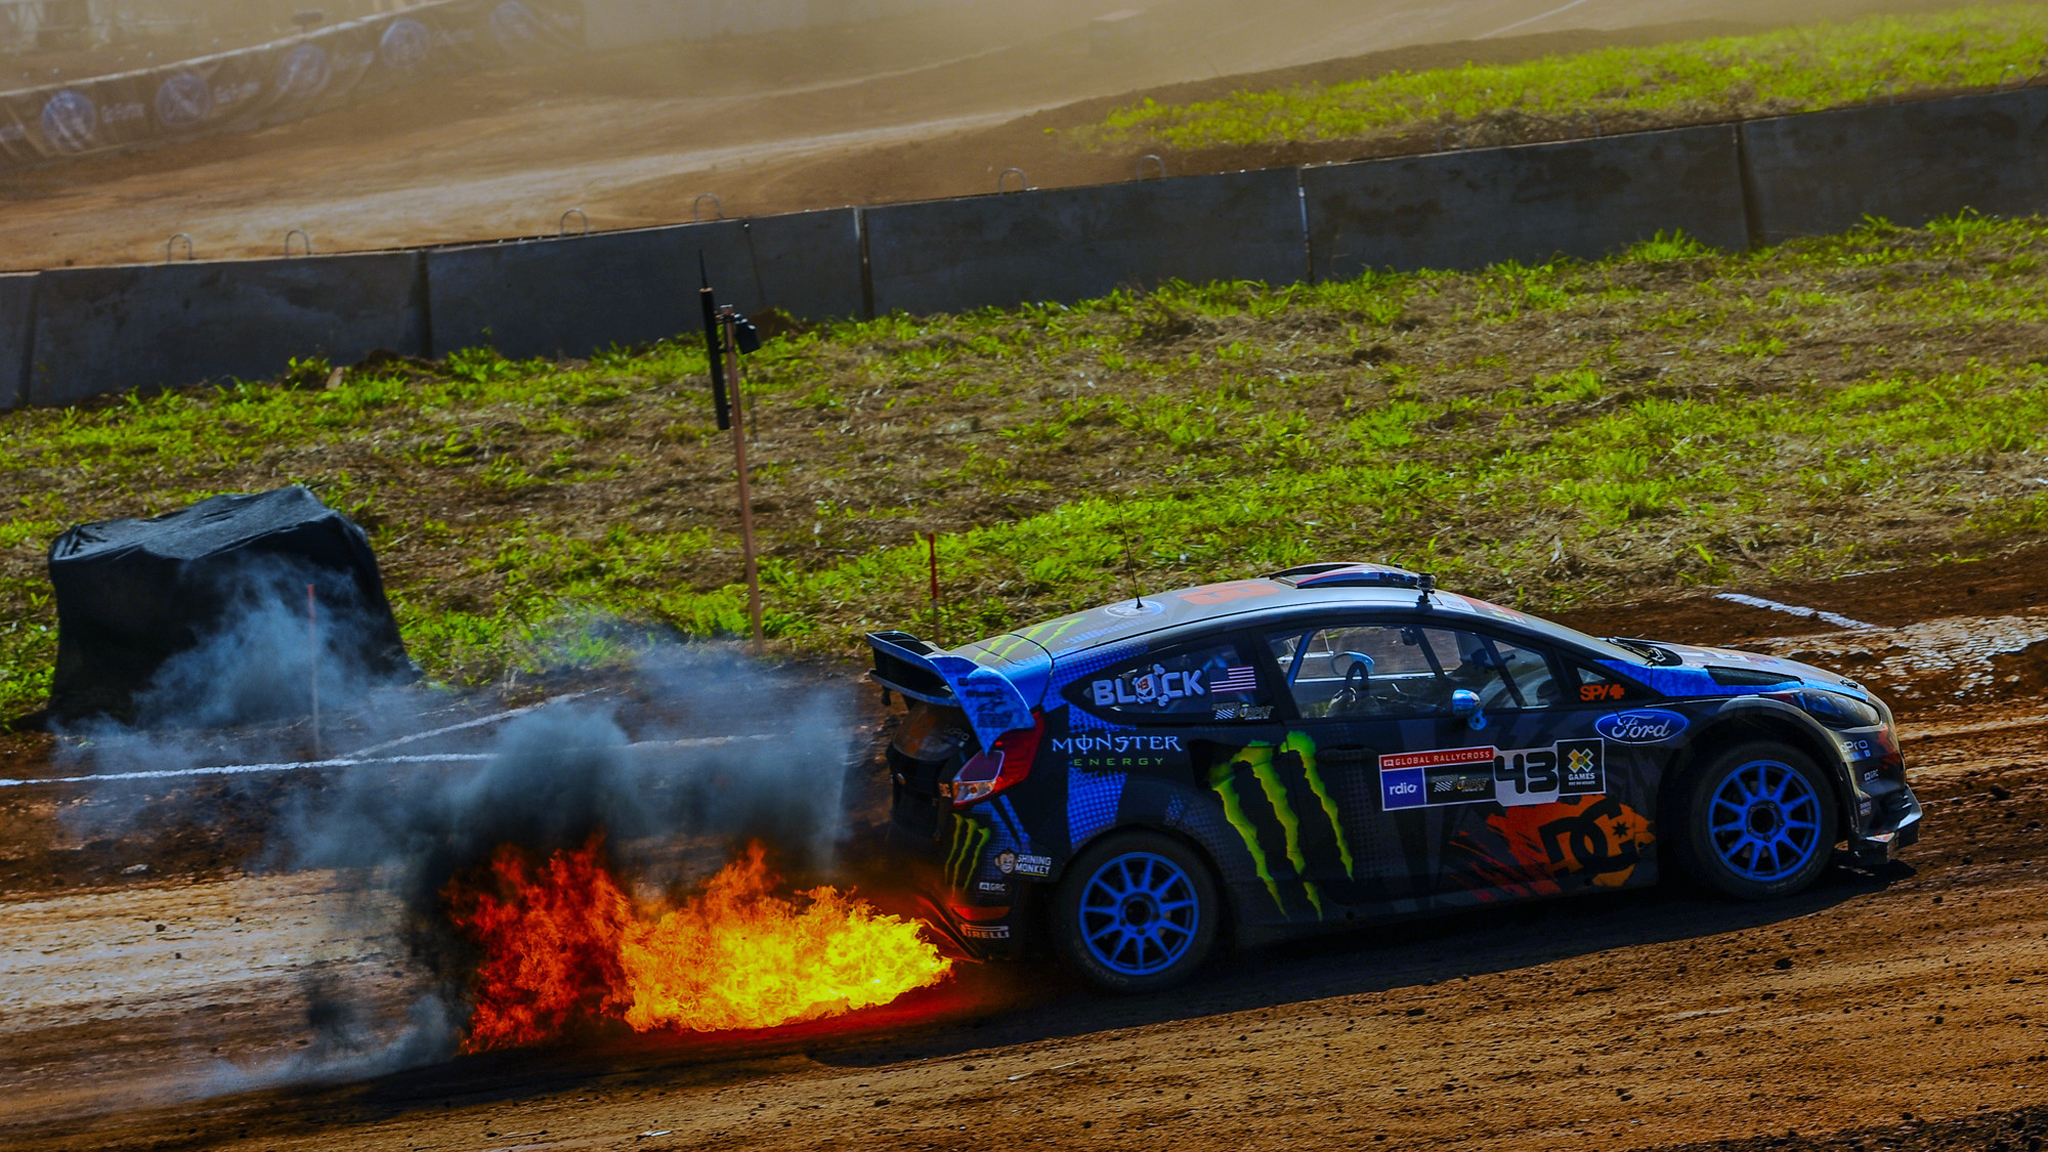 Hd wallpaper ken block - X Games Barcelona Rallycross Spotters Have Their